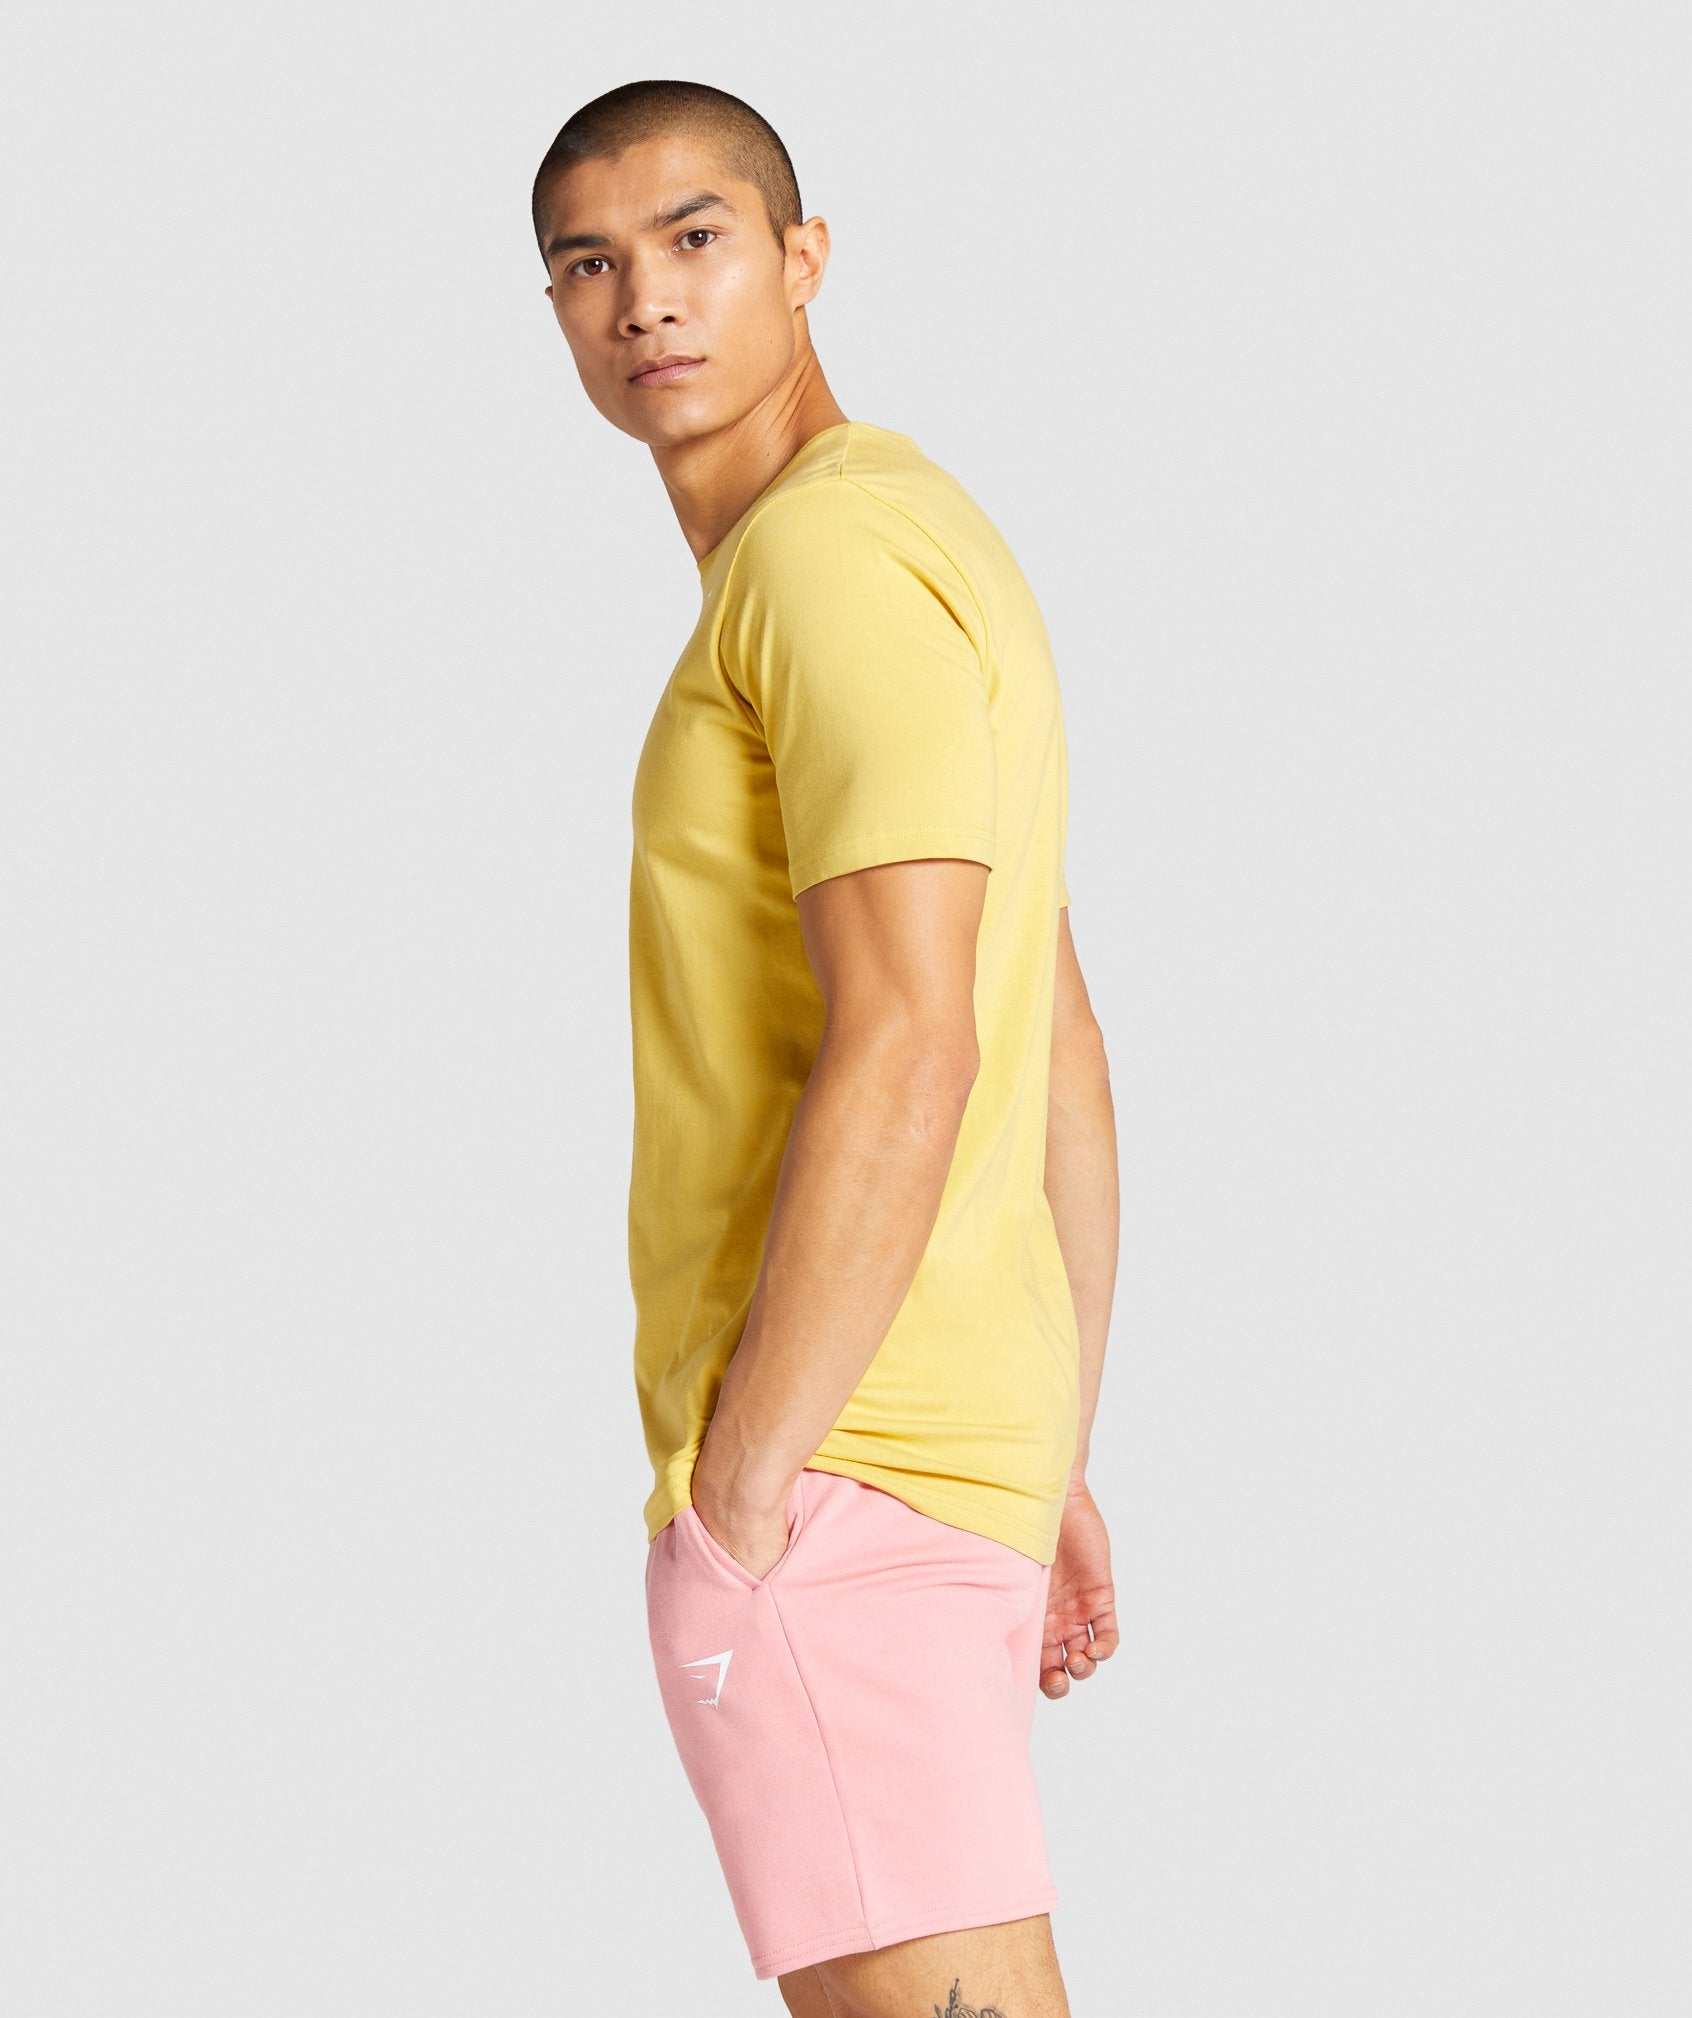 Classier: Buy Gymshark Critical T-Shirt - Yellow - Gymshark